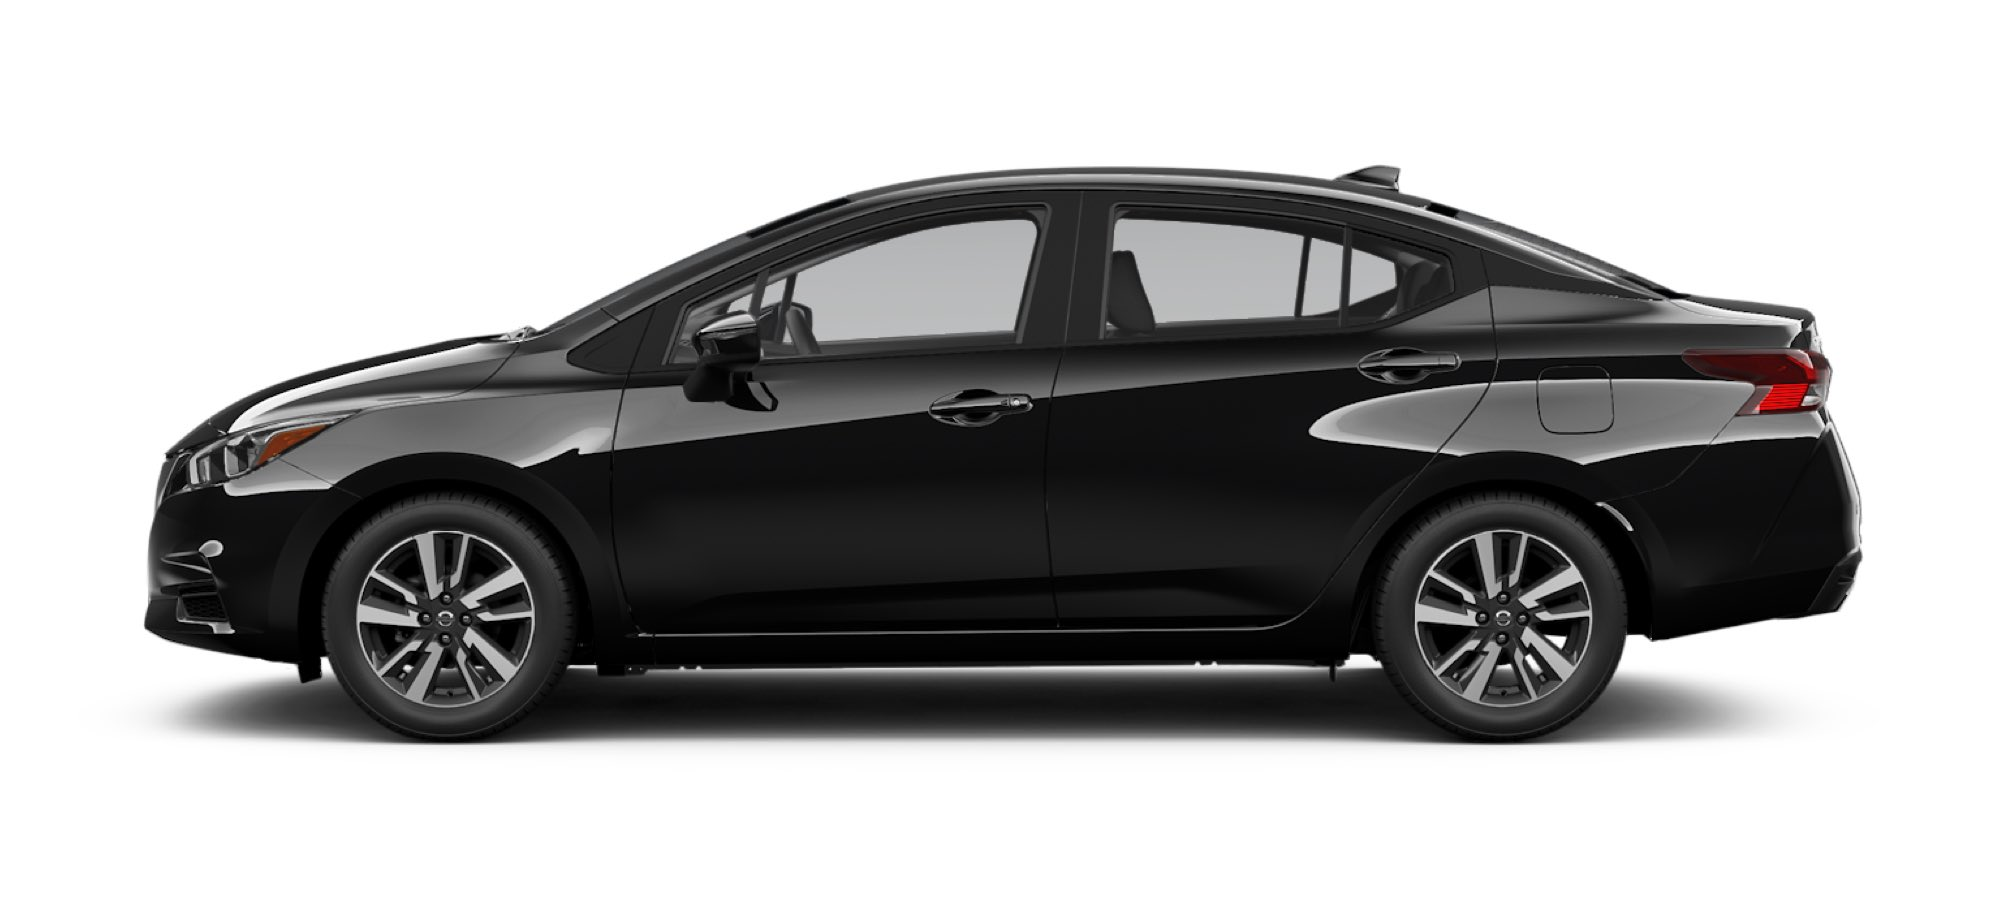 2021 Nissan Versa in Super Black